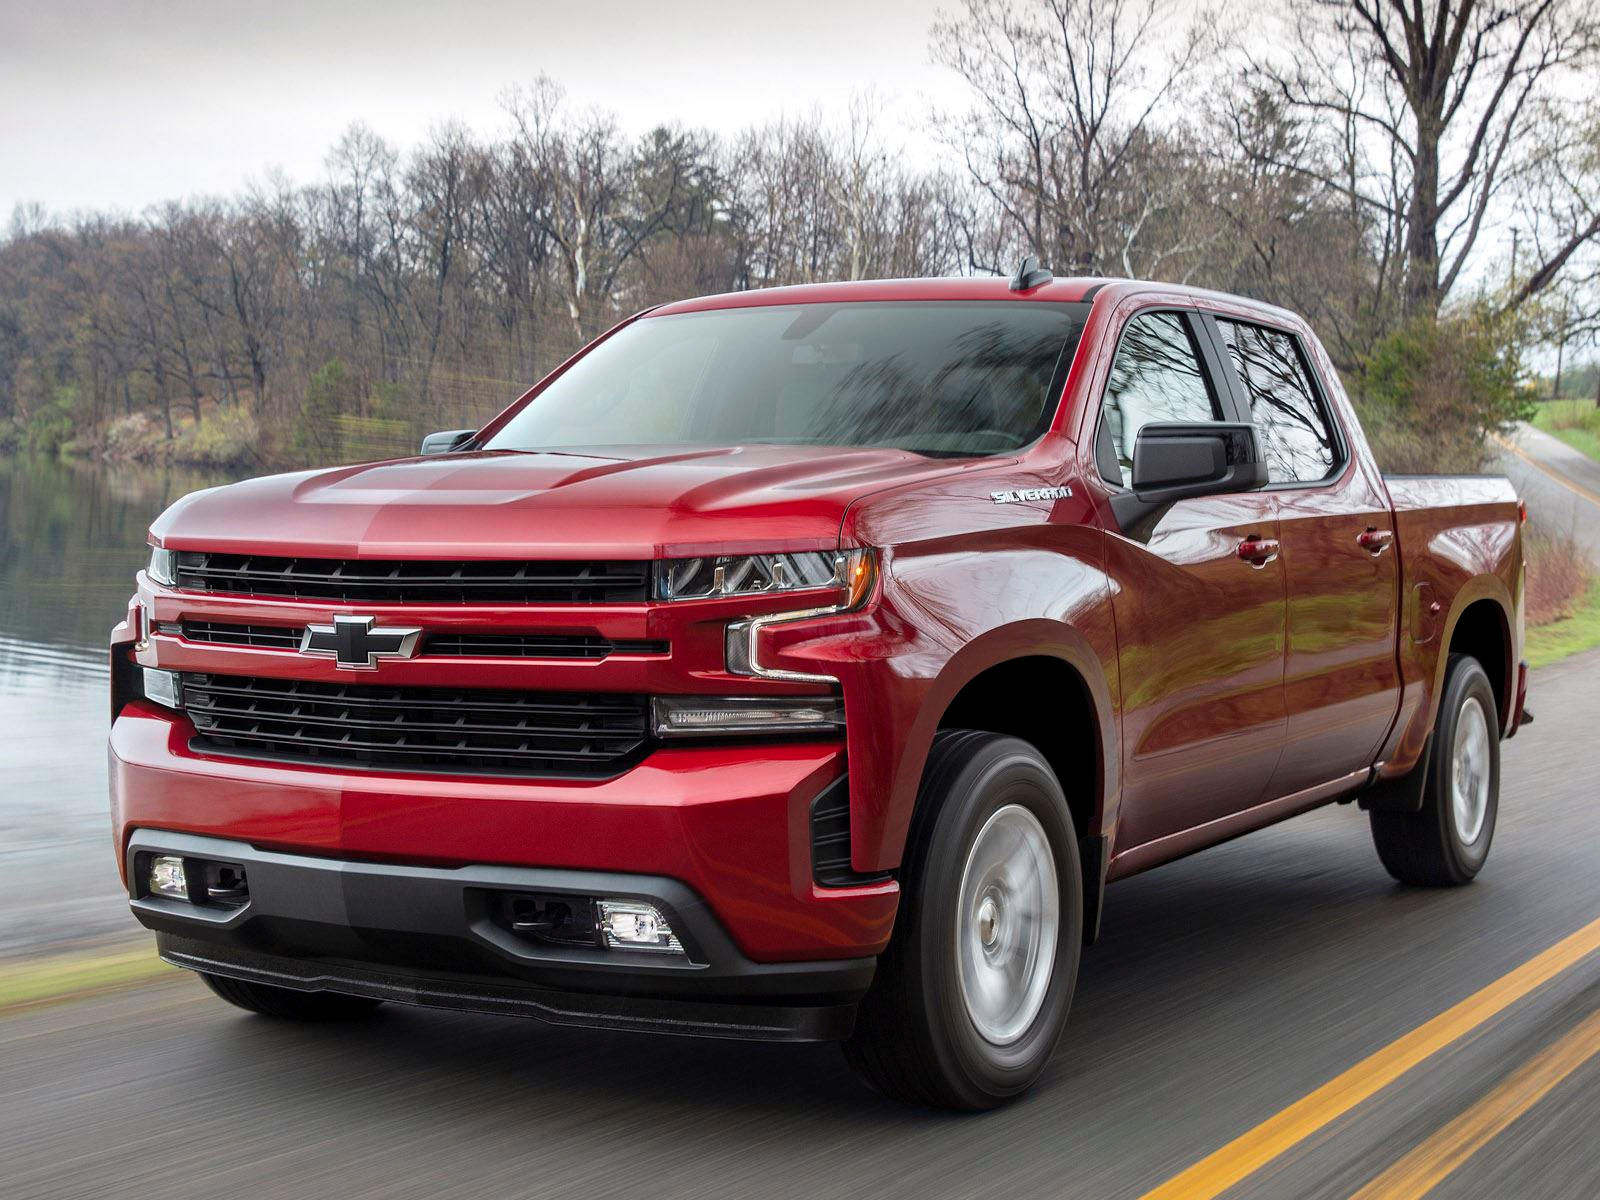 2019 Chevrolet Silverado Offers More Truck For Less